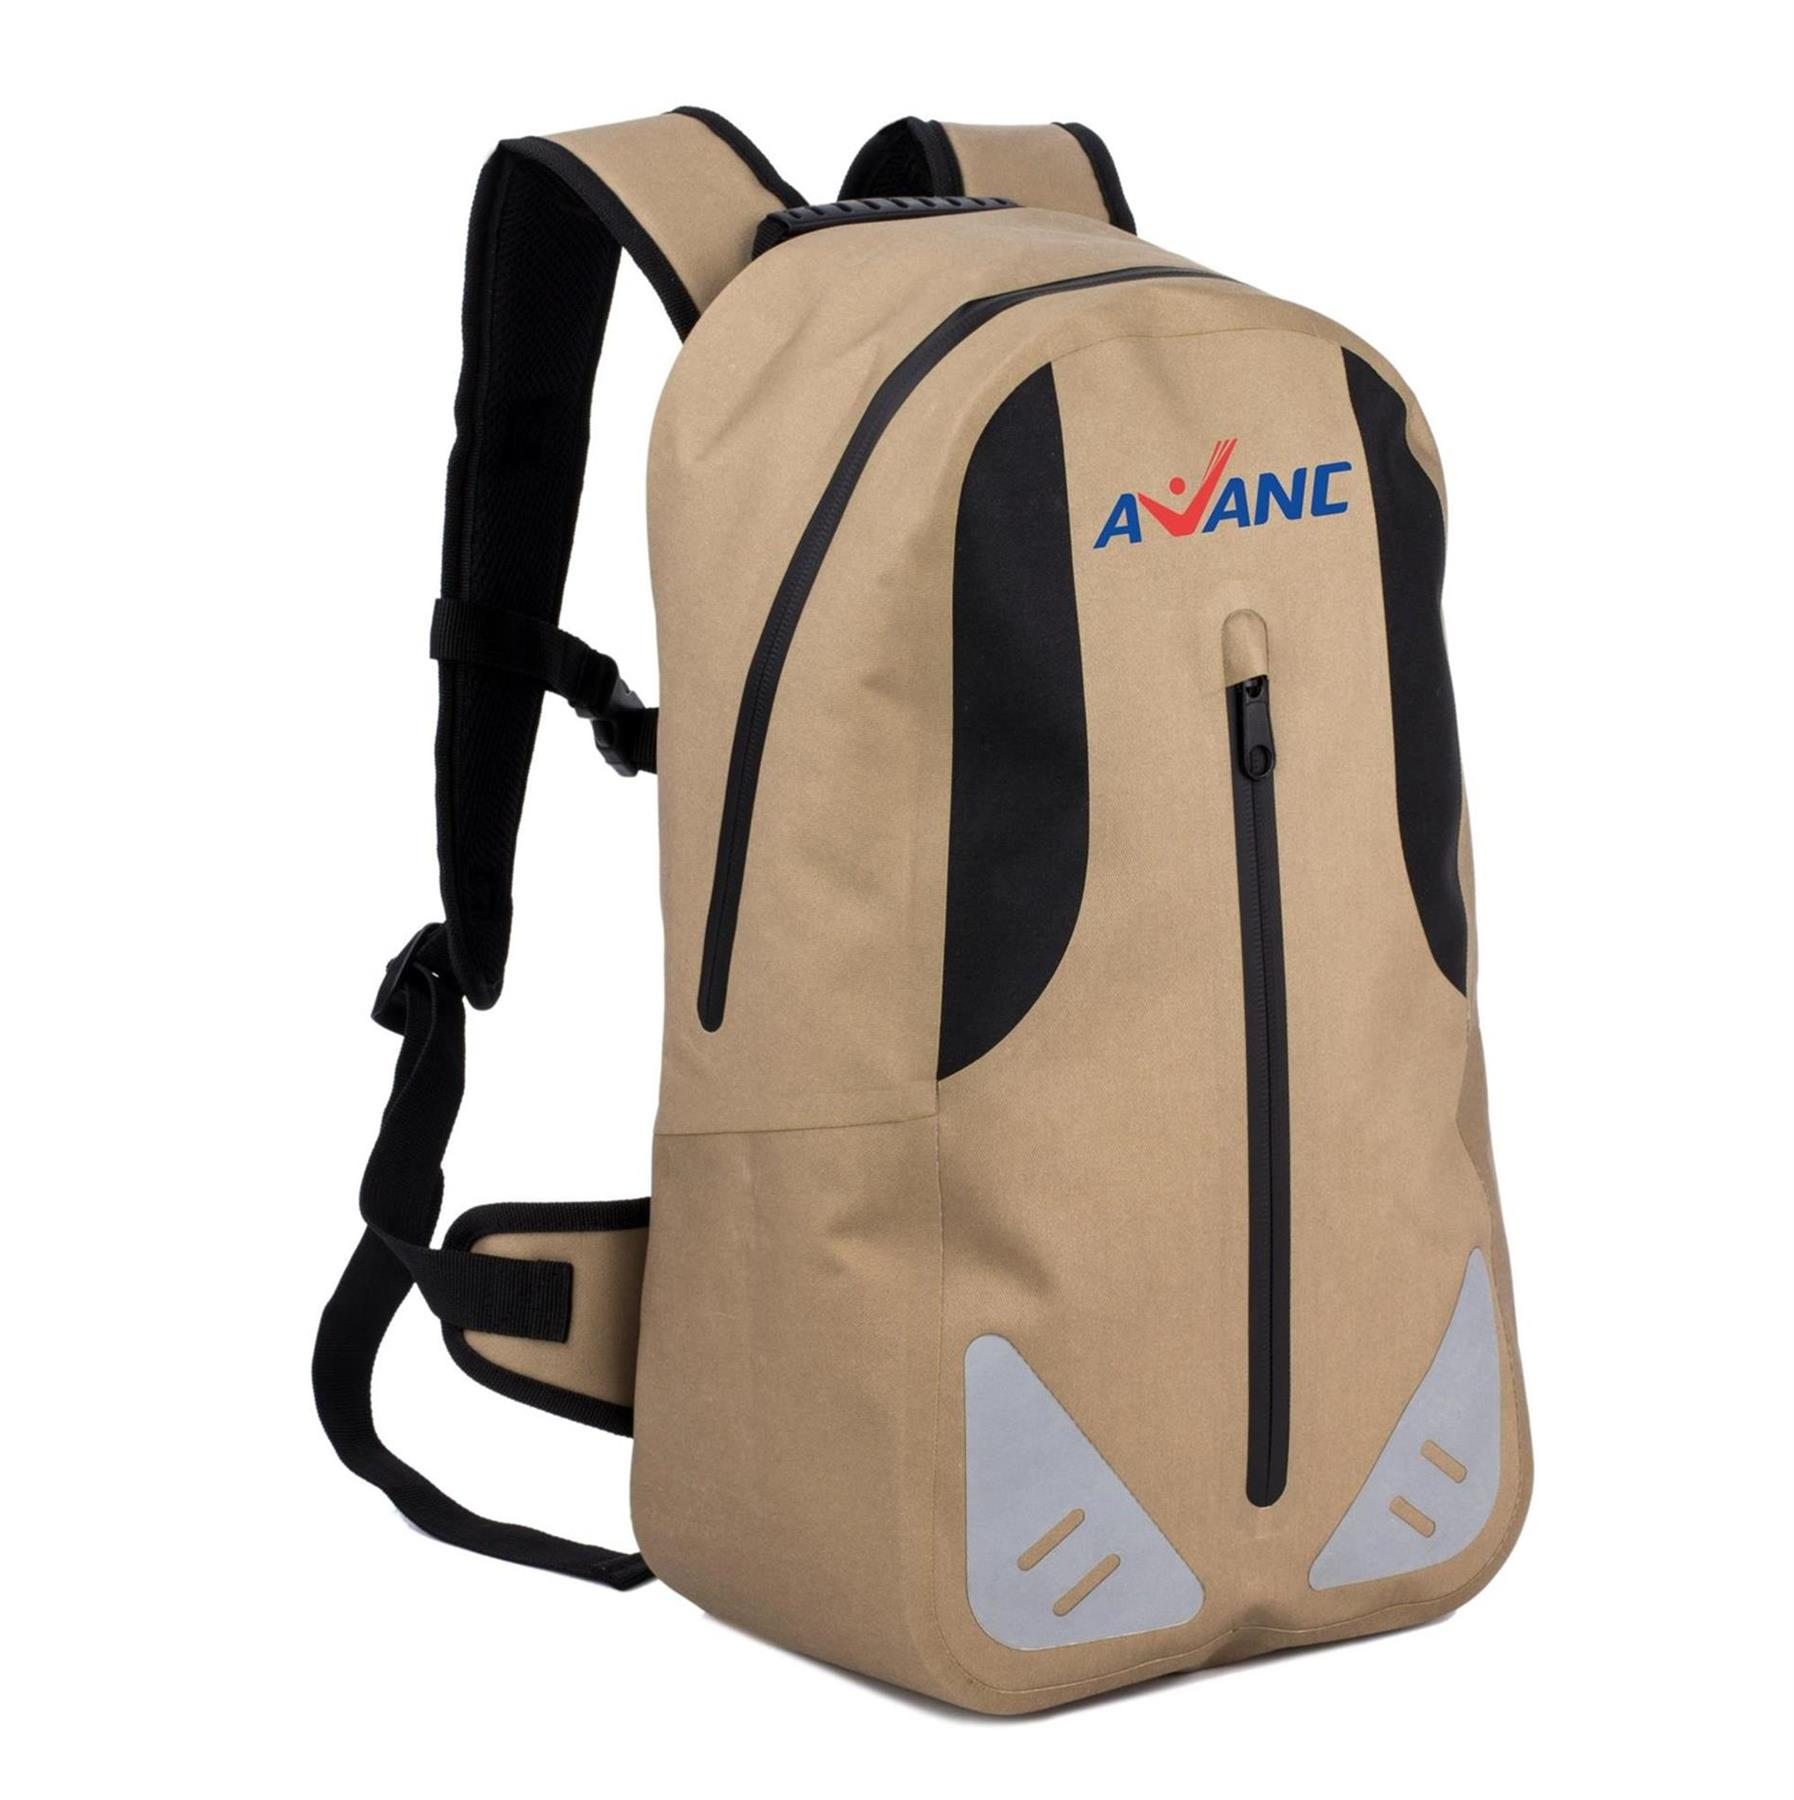 Fashion Waterproof  Backpack With Zipper Closure 15L